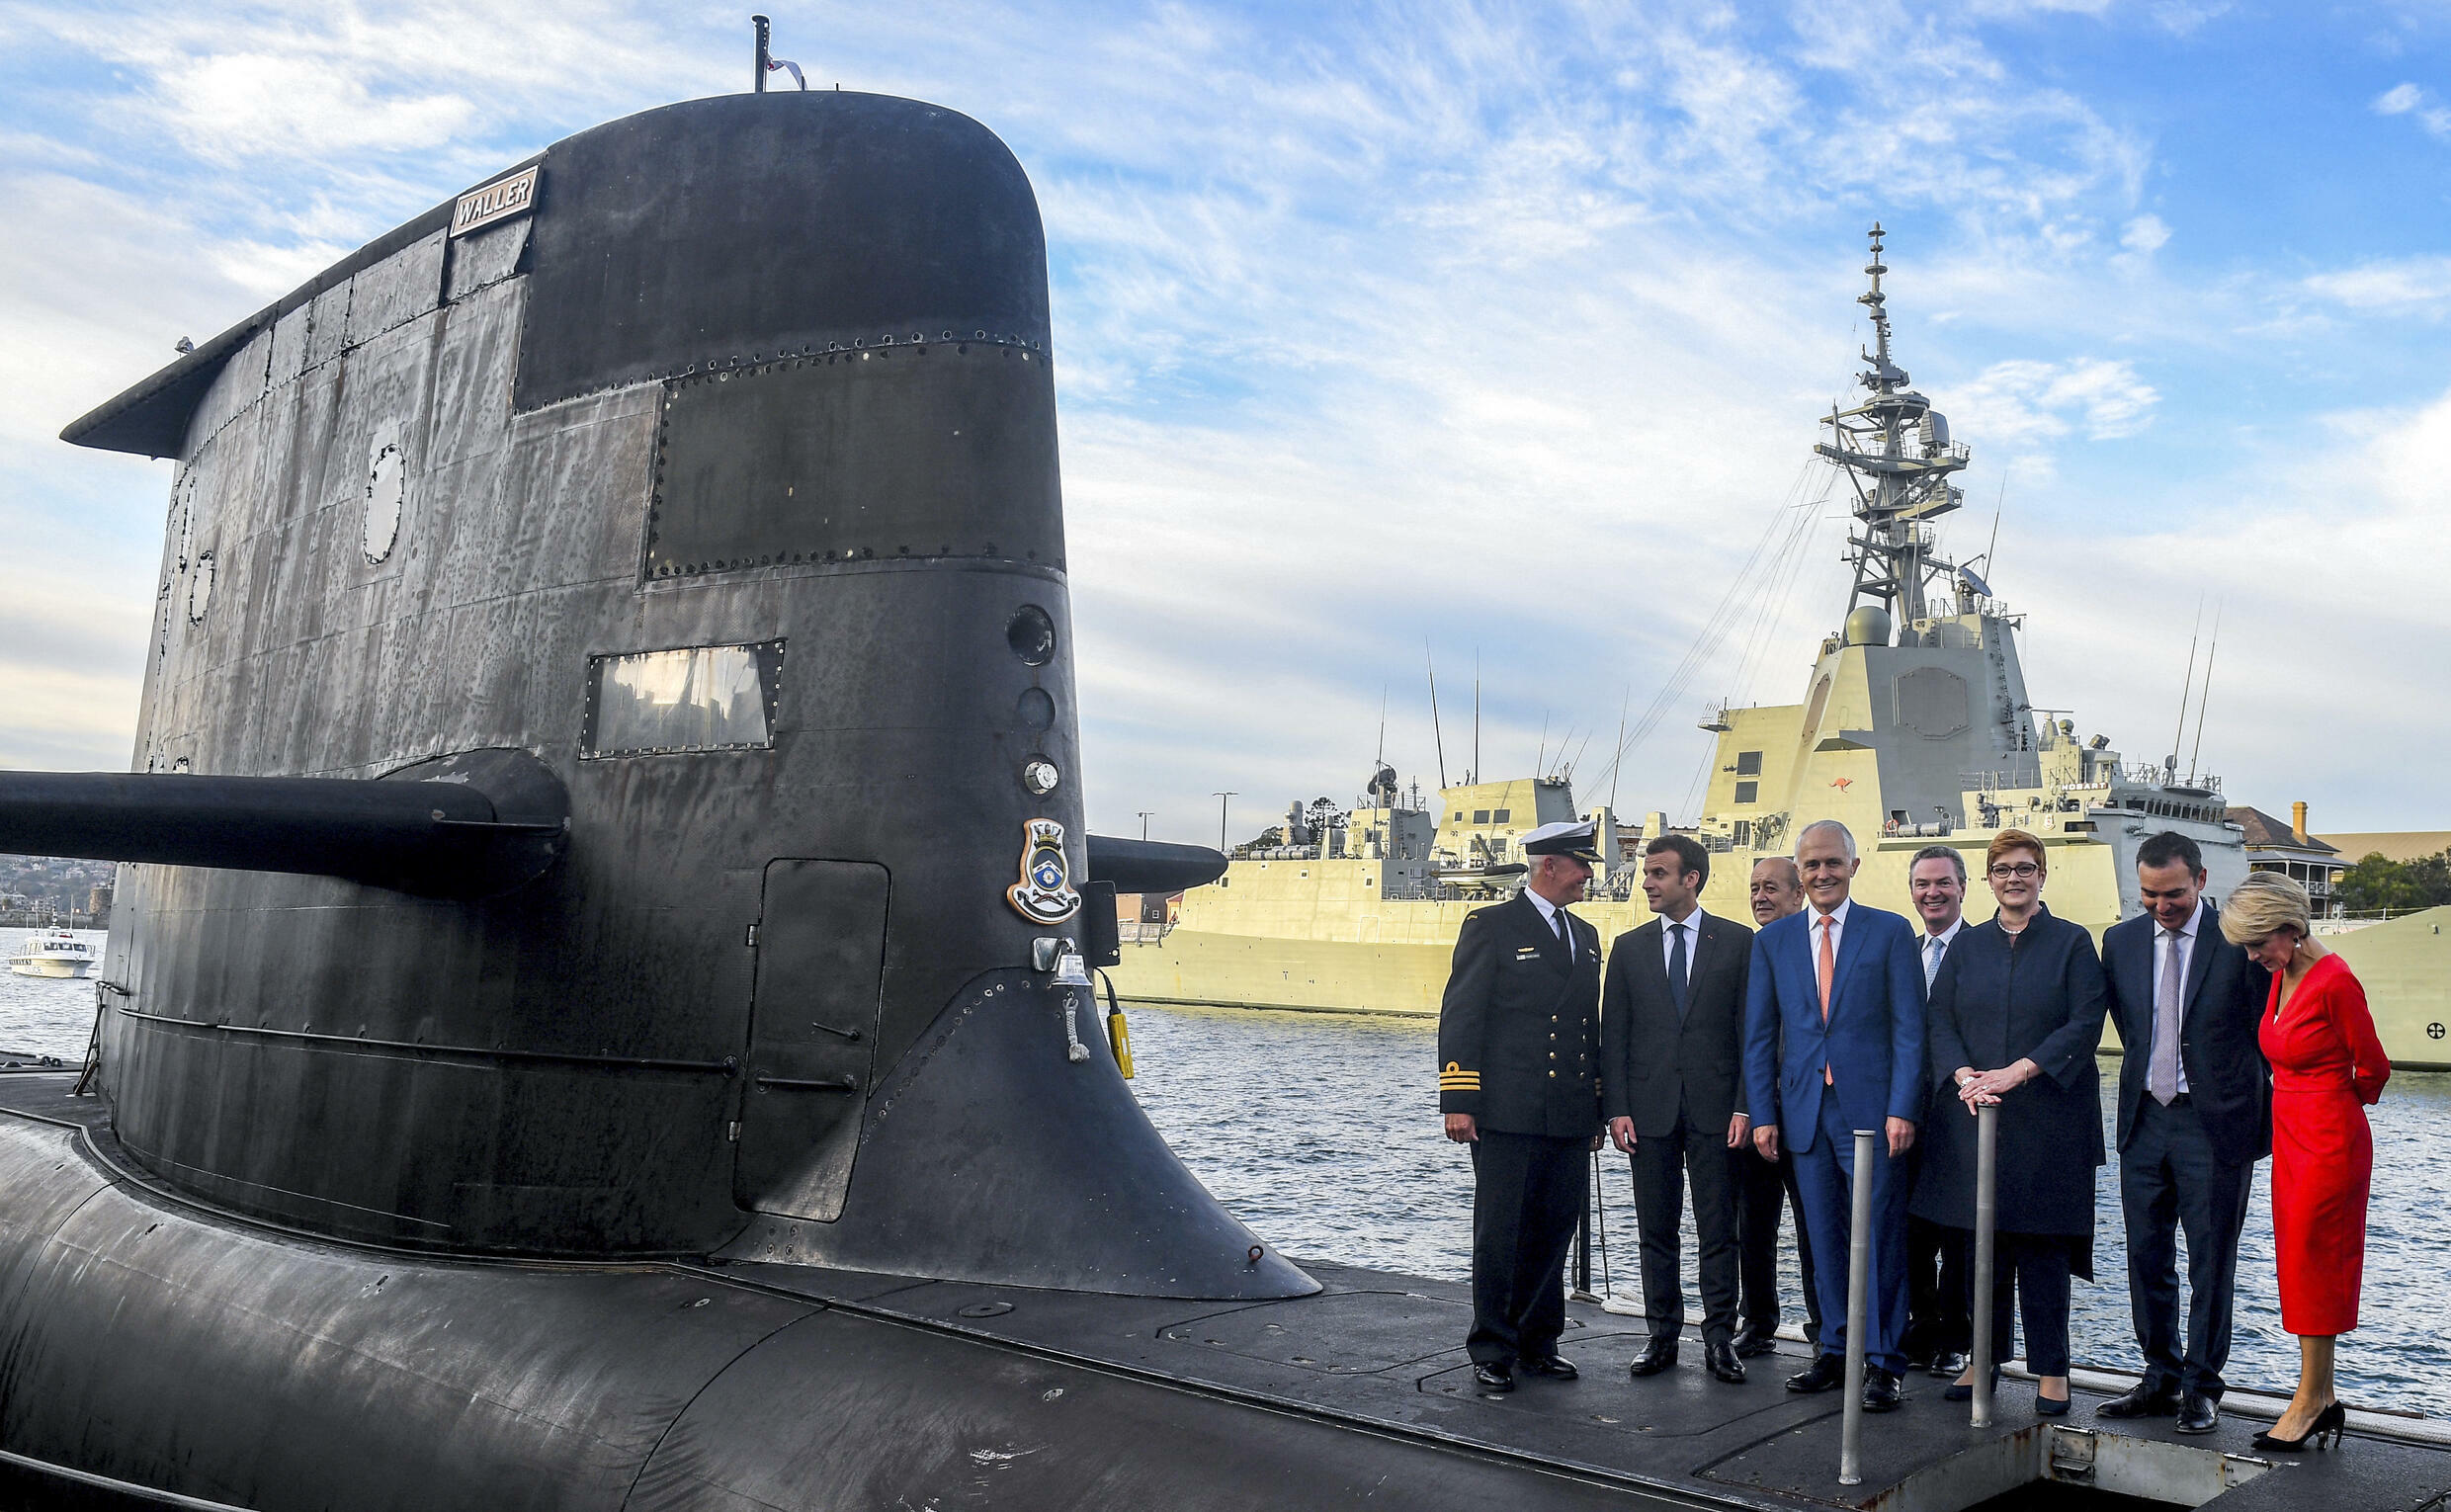 French President Emmanuel Macron tours the deck of a submarine with Australia's then prime minister Malcolm Turnbull in Sydney in May 2018